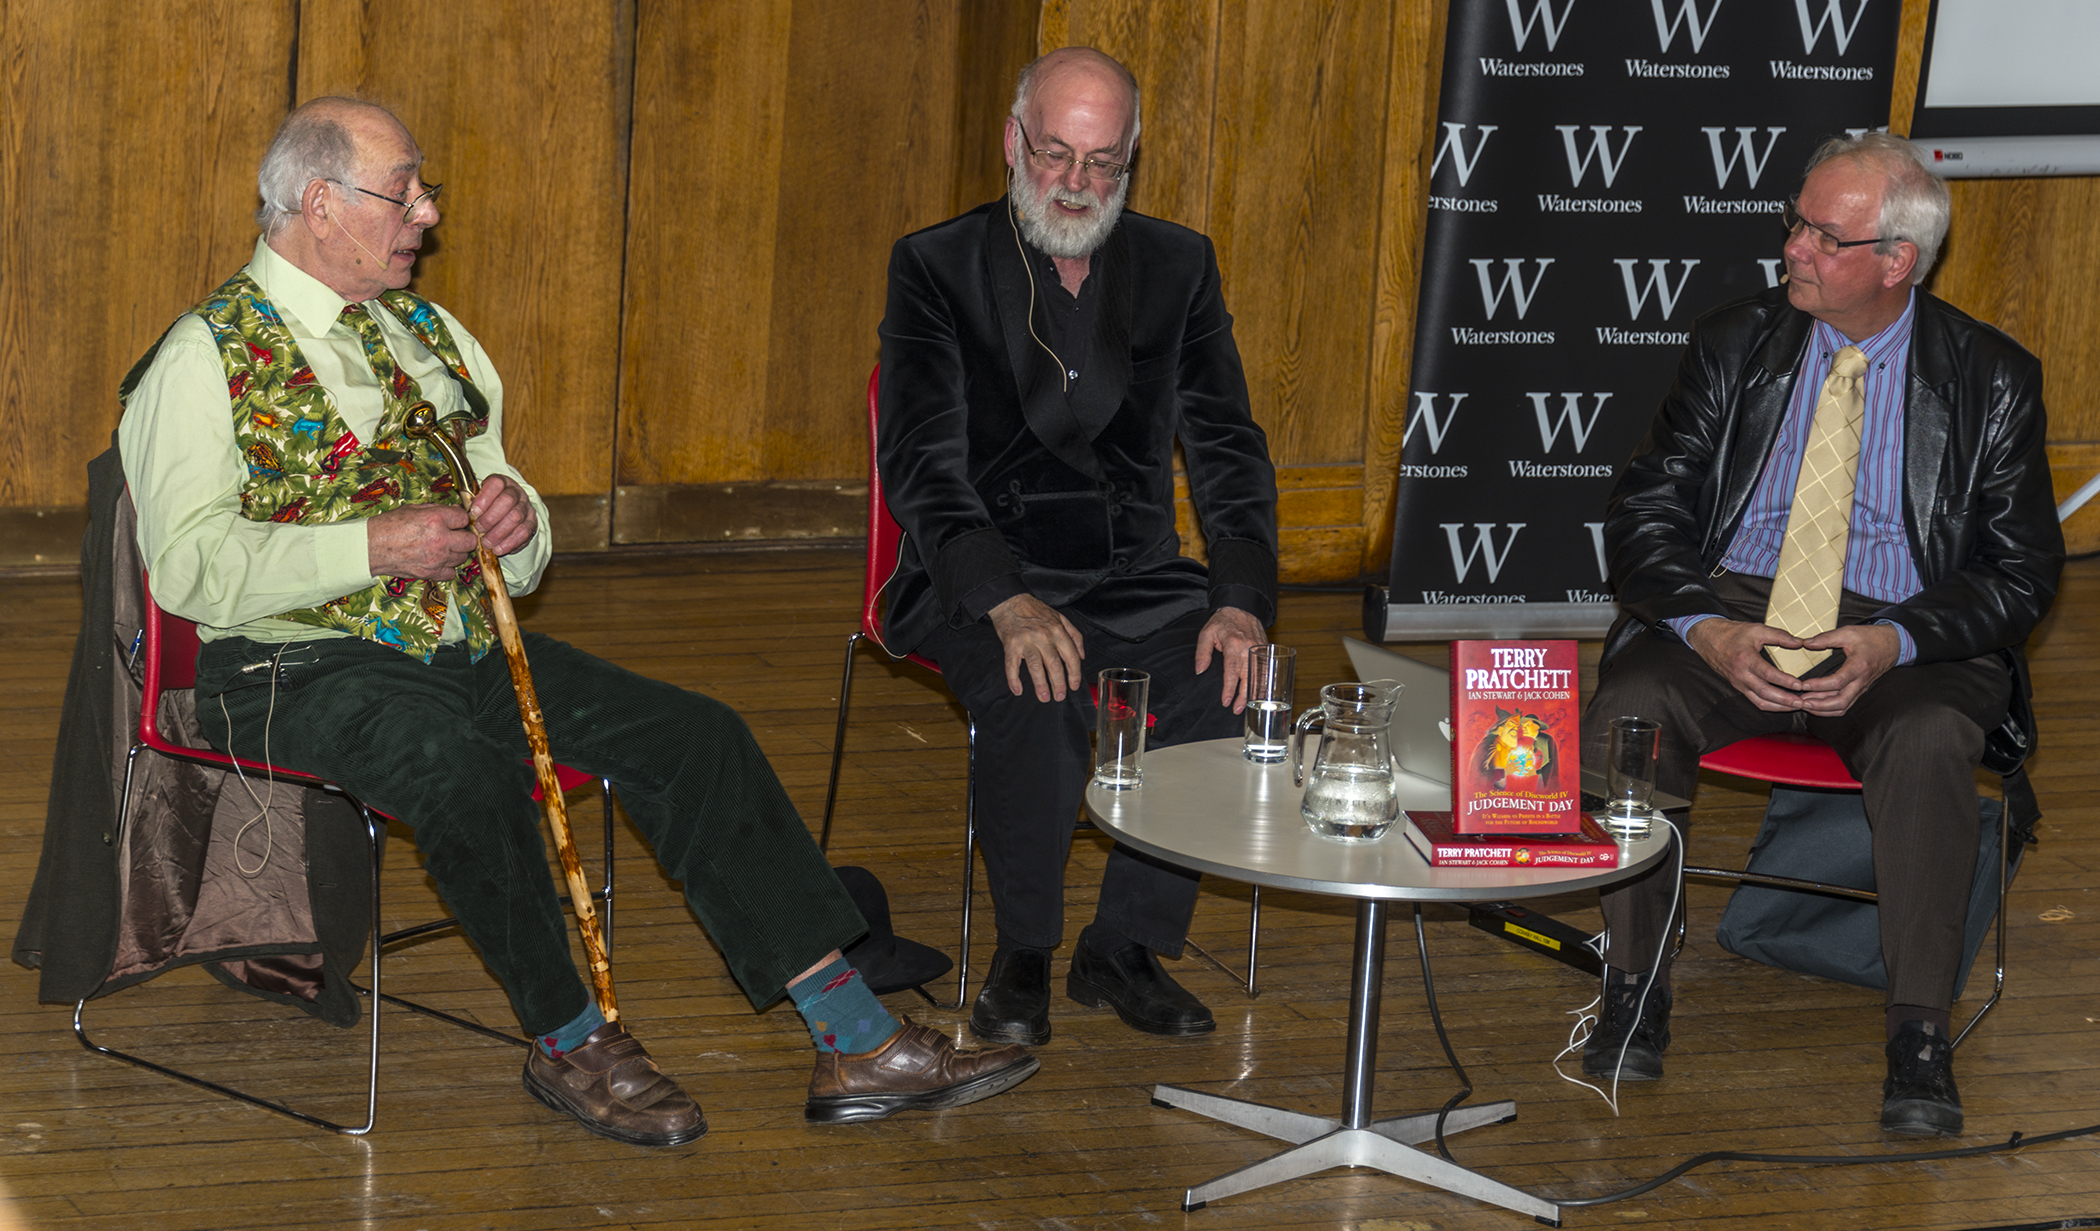 Terry Pratchett (centre) talks about his book Judgment Day. --steeljam via Flickr commons (photo)